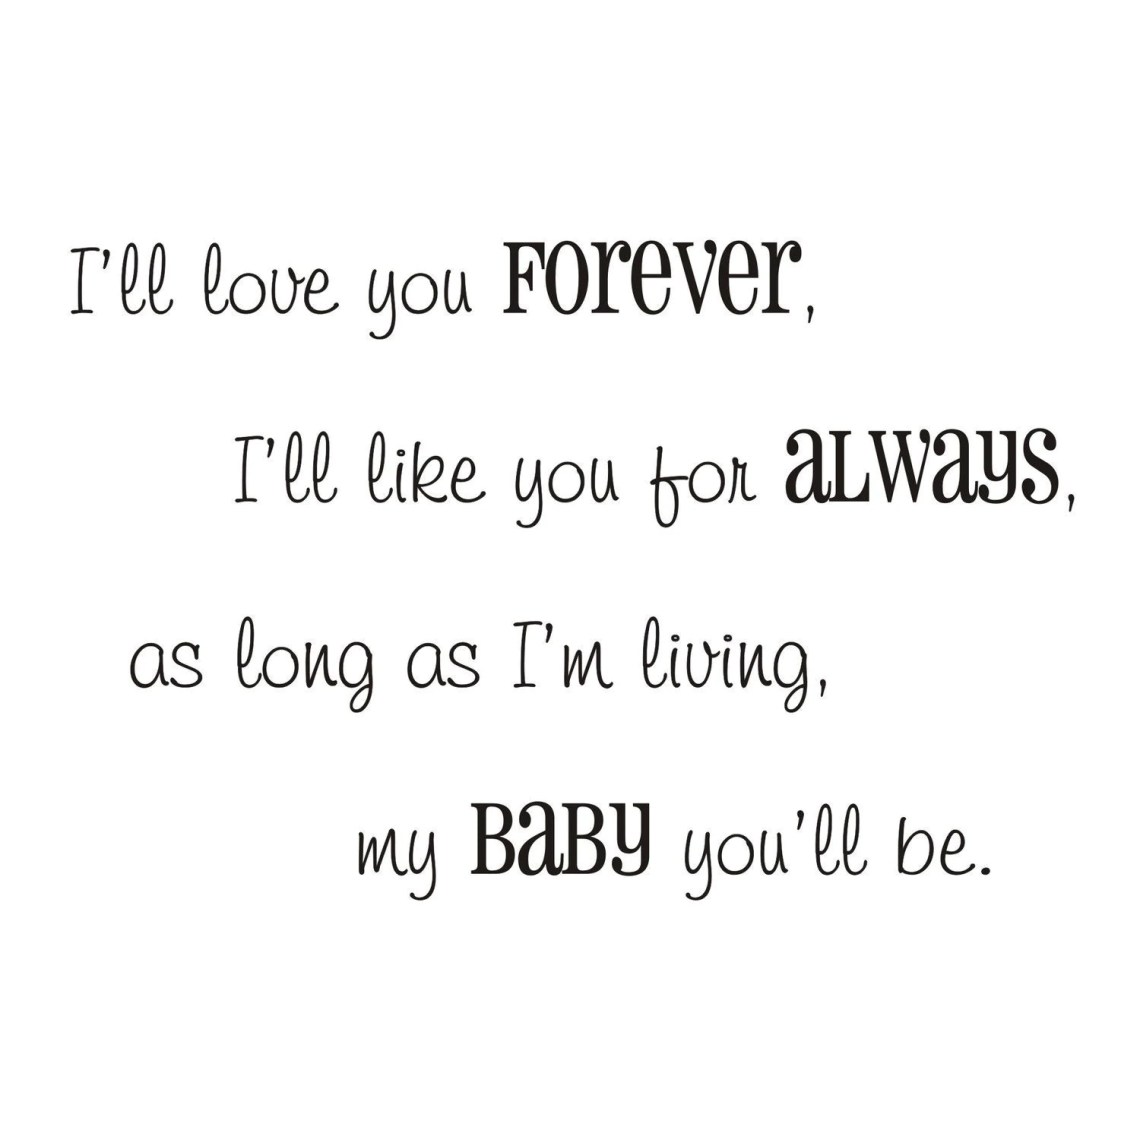 Download I'll love you forever vinyl wall decal by back40life on Etsy